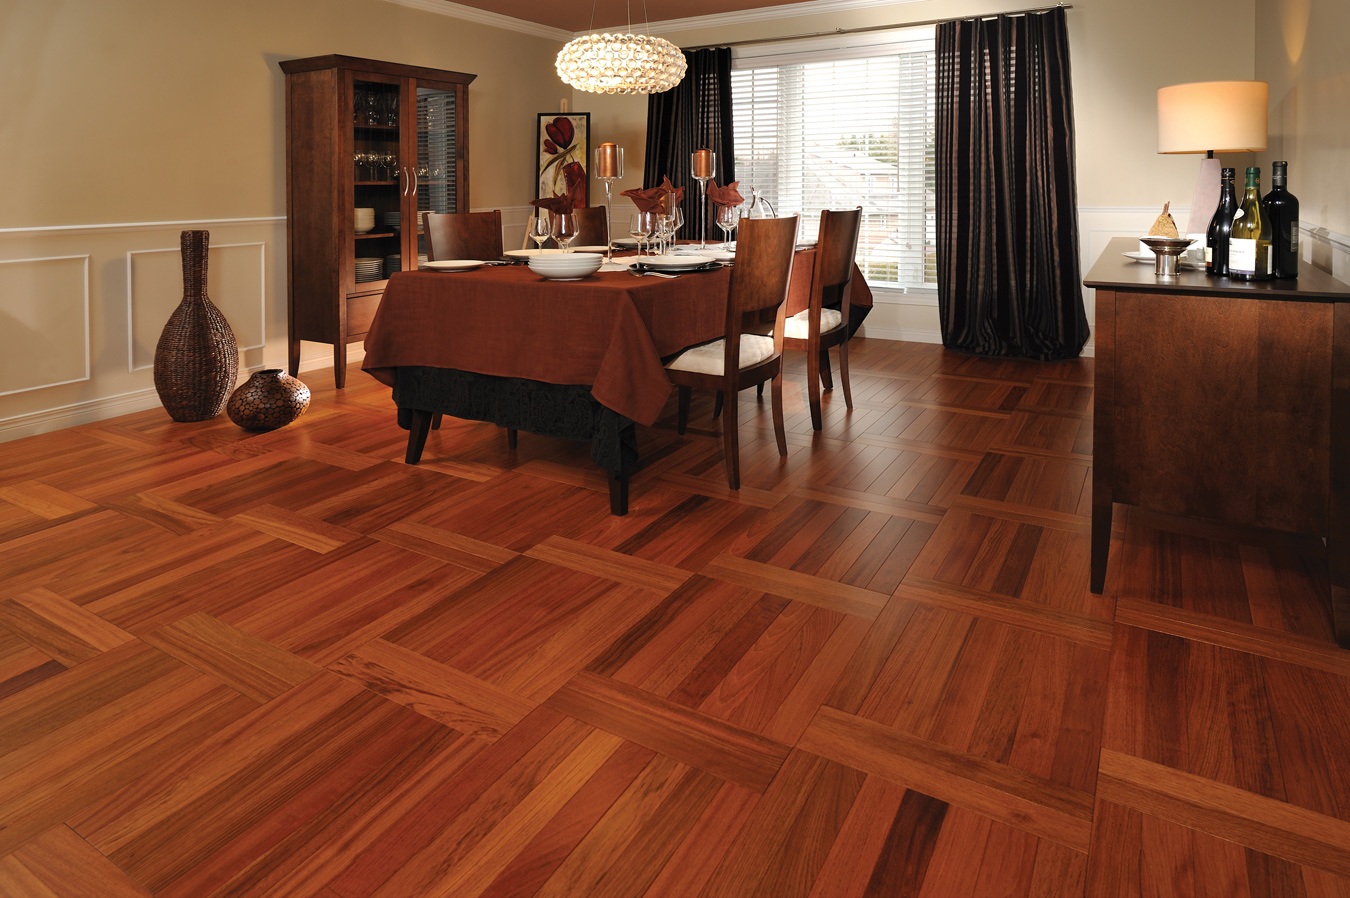 15 popular ideas and designs for hardwood floors qnud for Hardwood floor designs